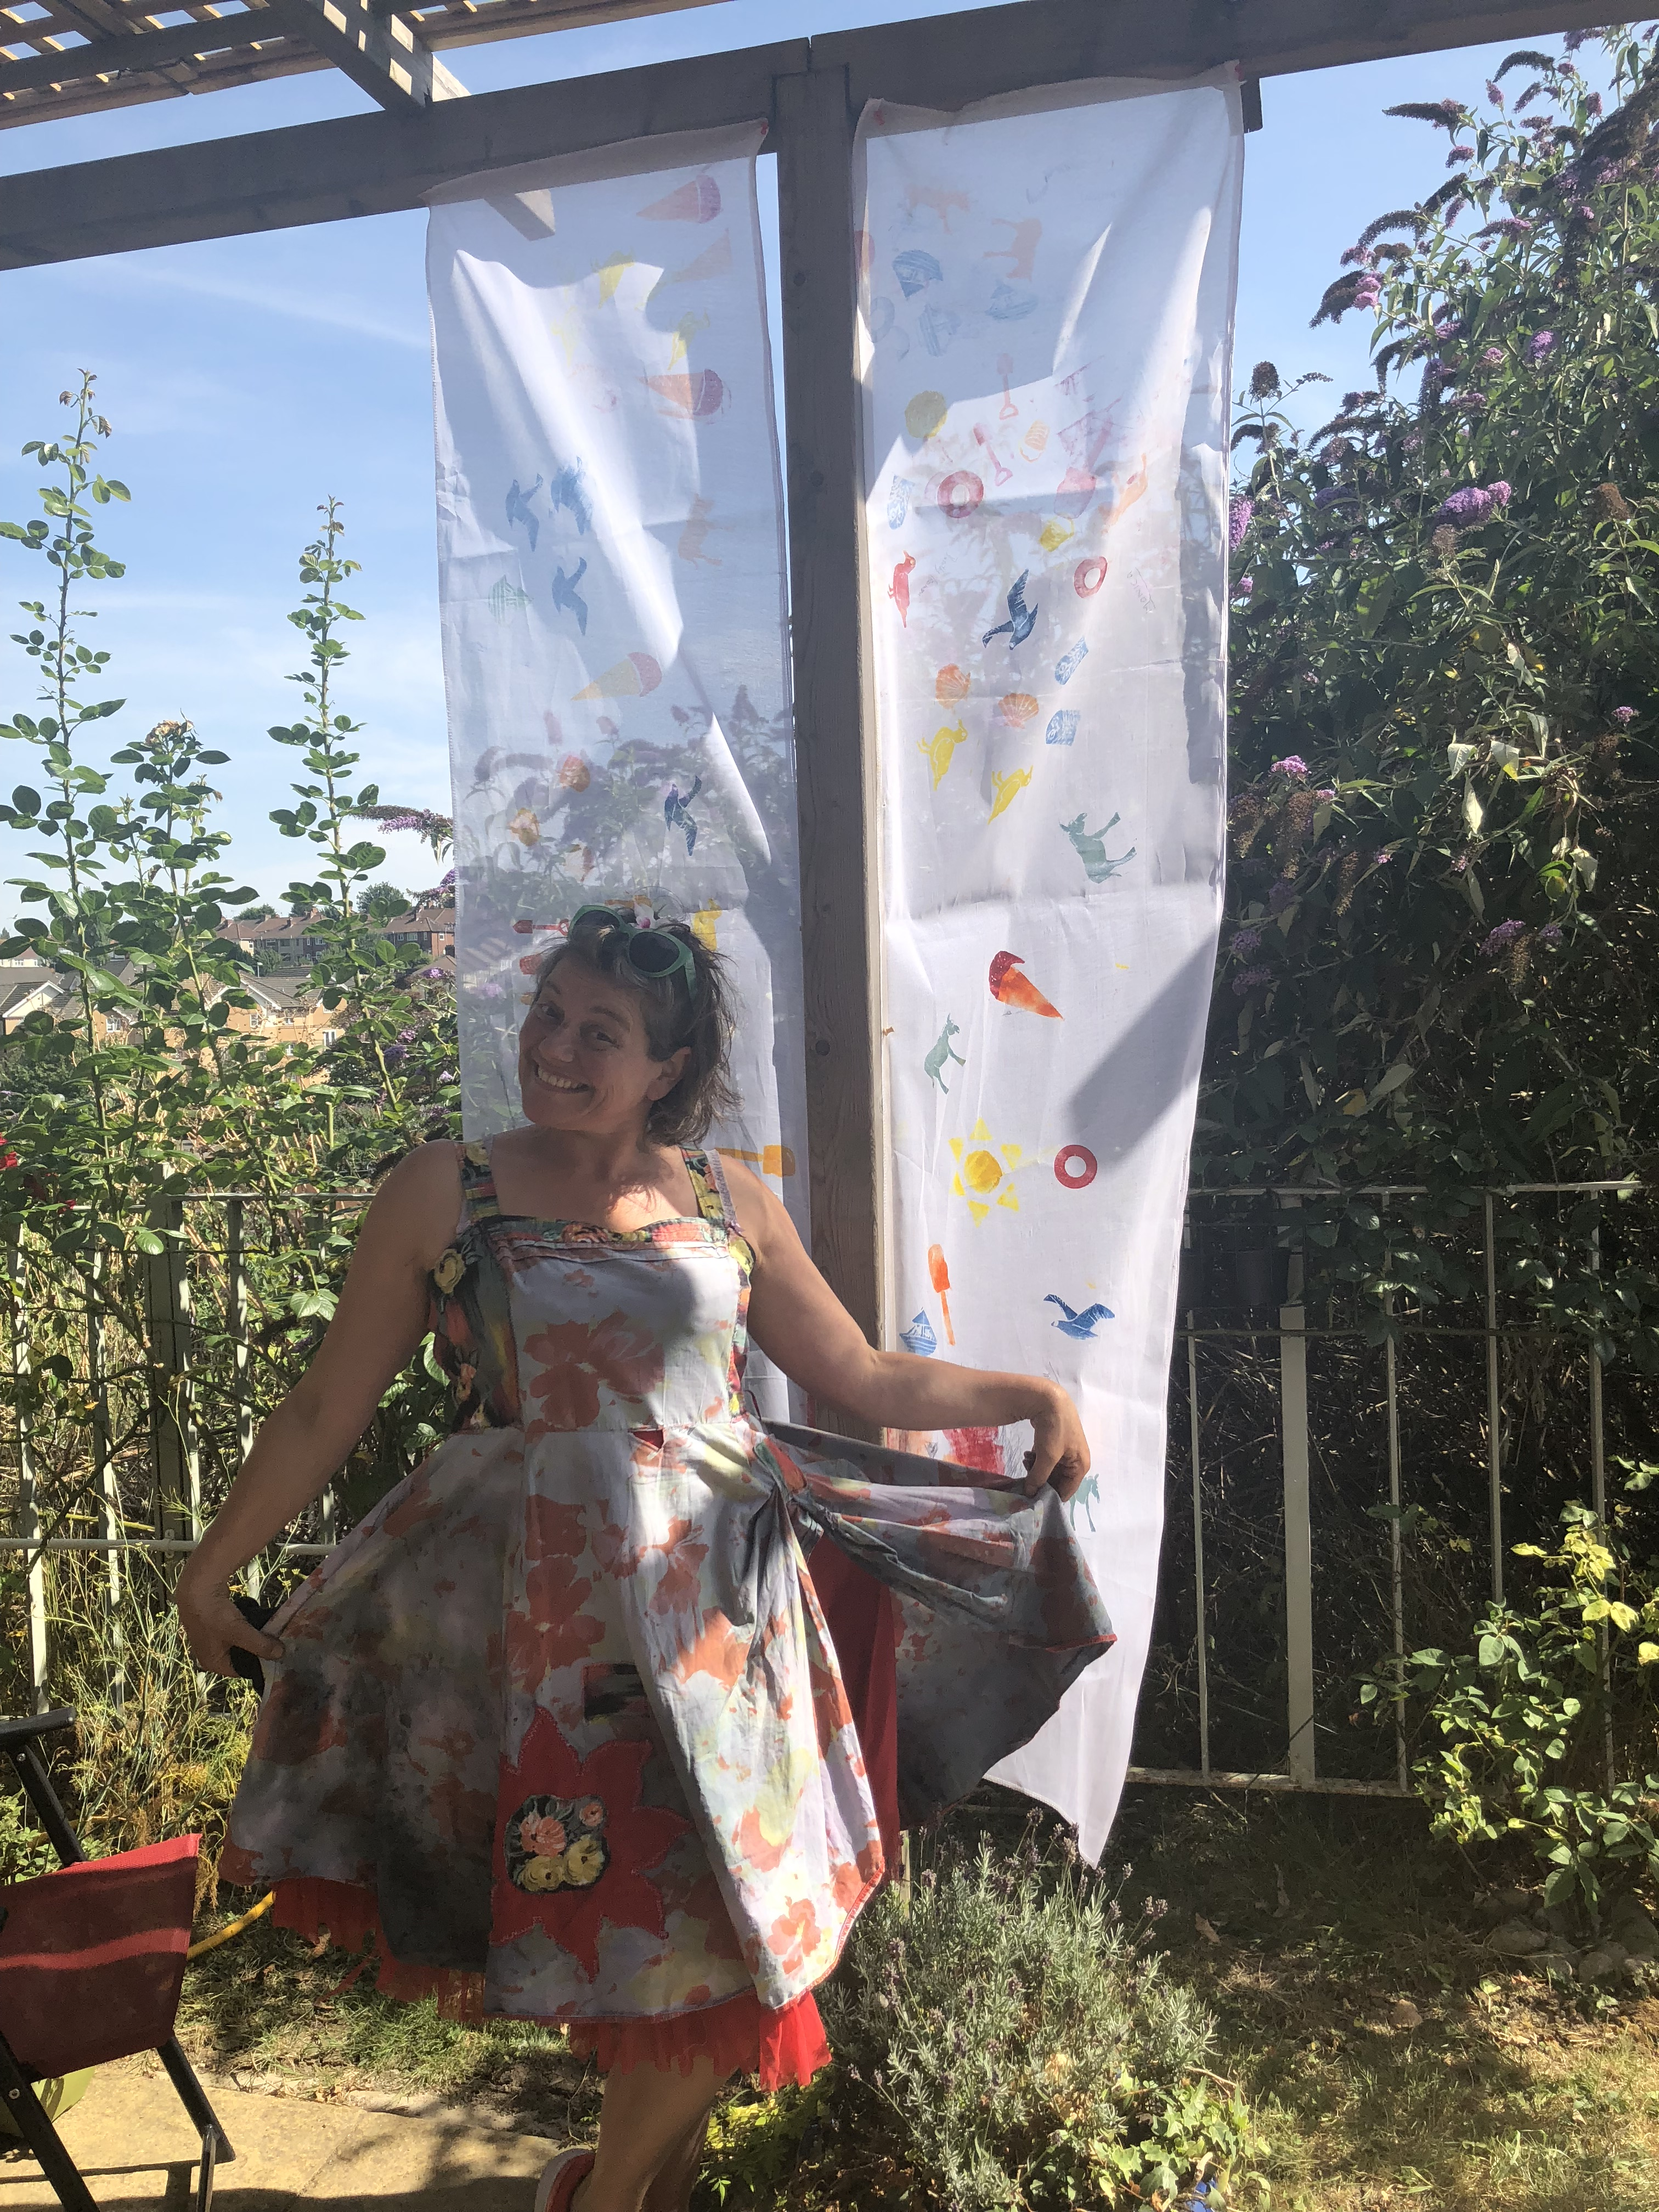 ad58d418931 We had an amazing afternoon designing and creating two printed banners for  our garden, how lovely do they look? We really enjoyed choosing what shapes  and ...